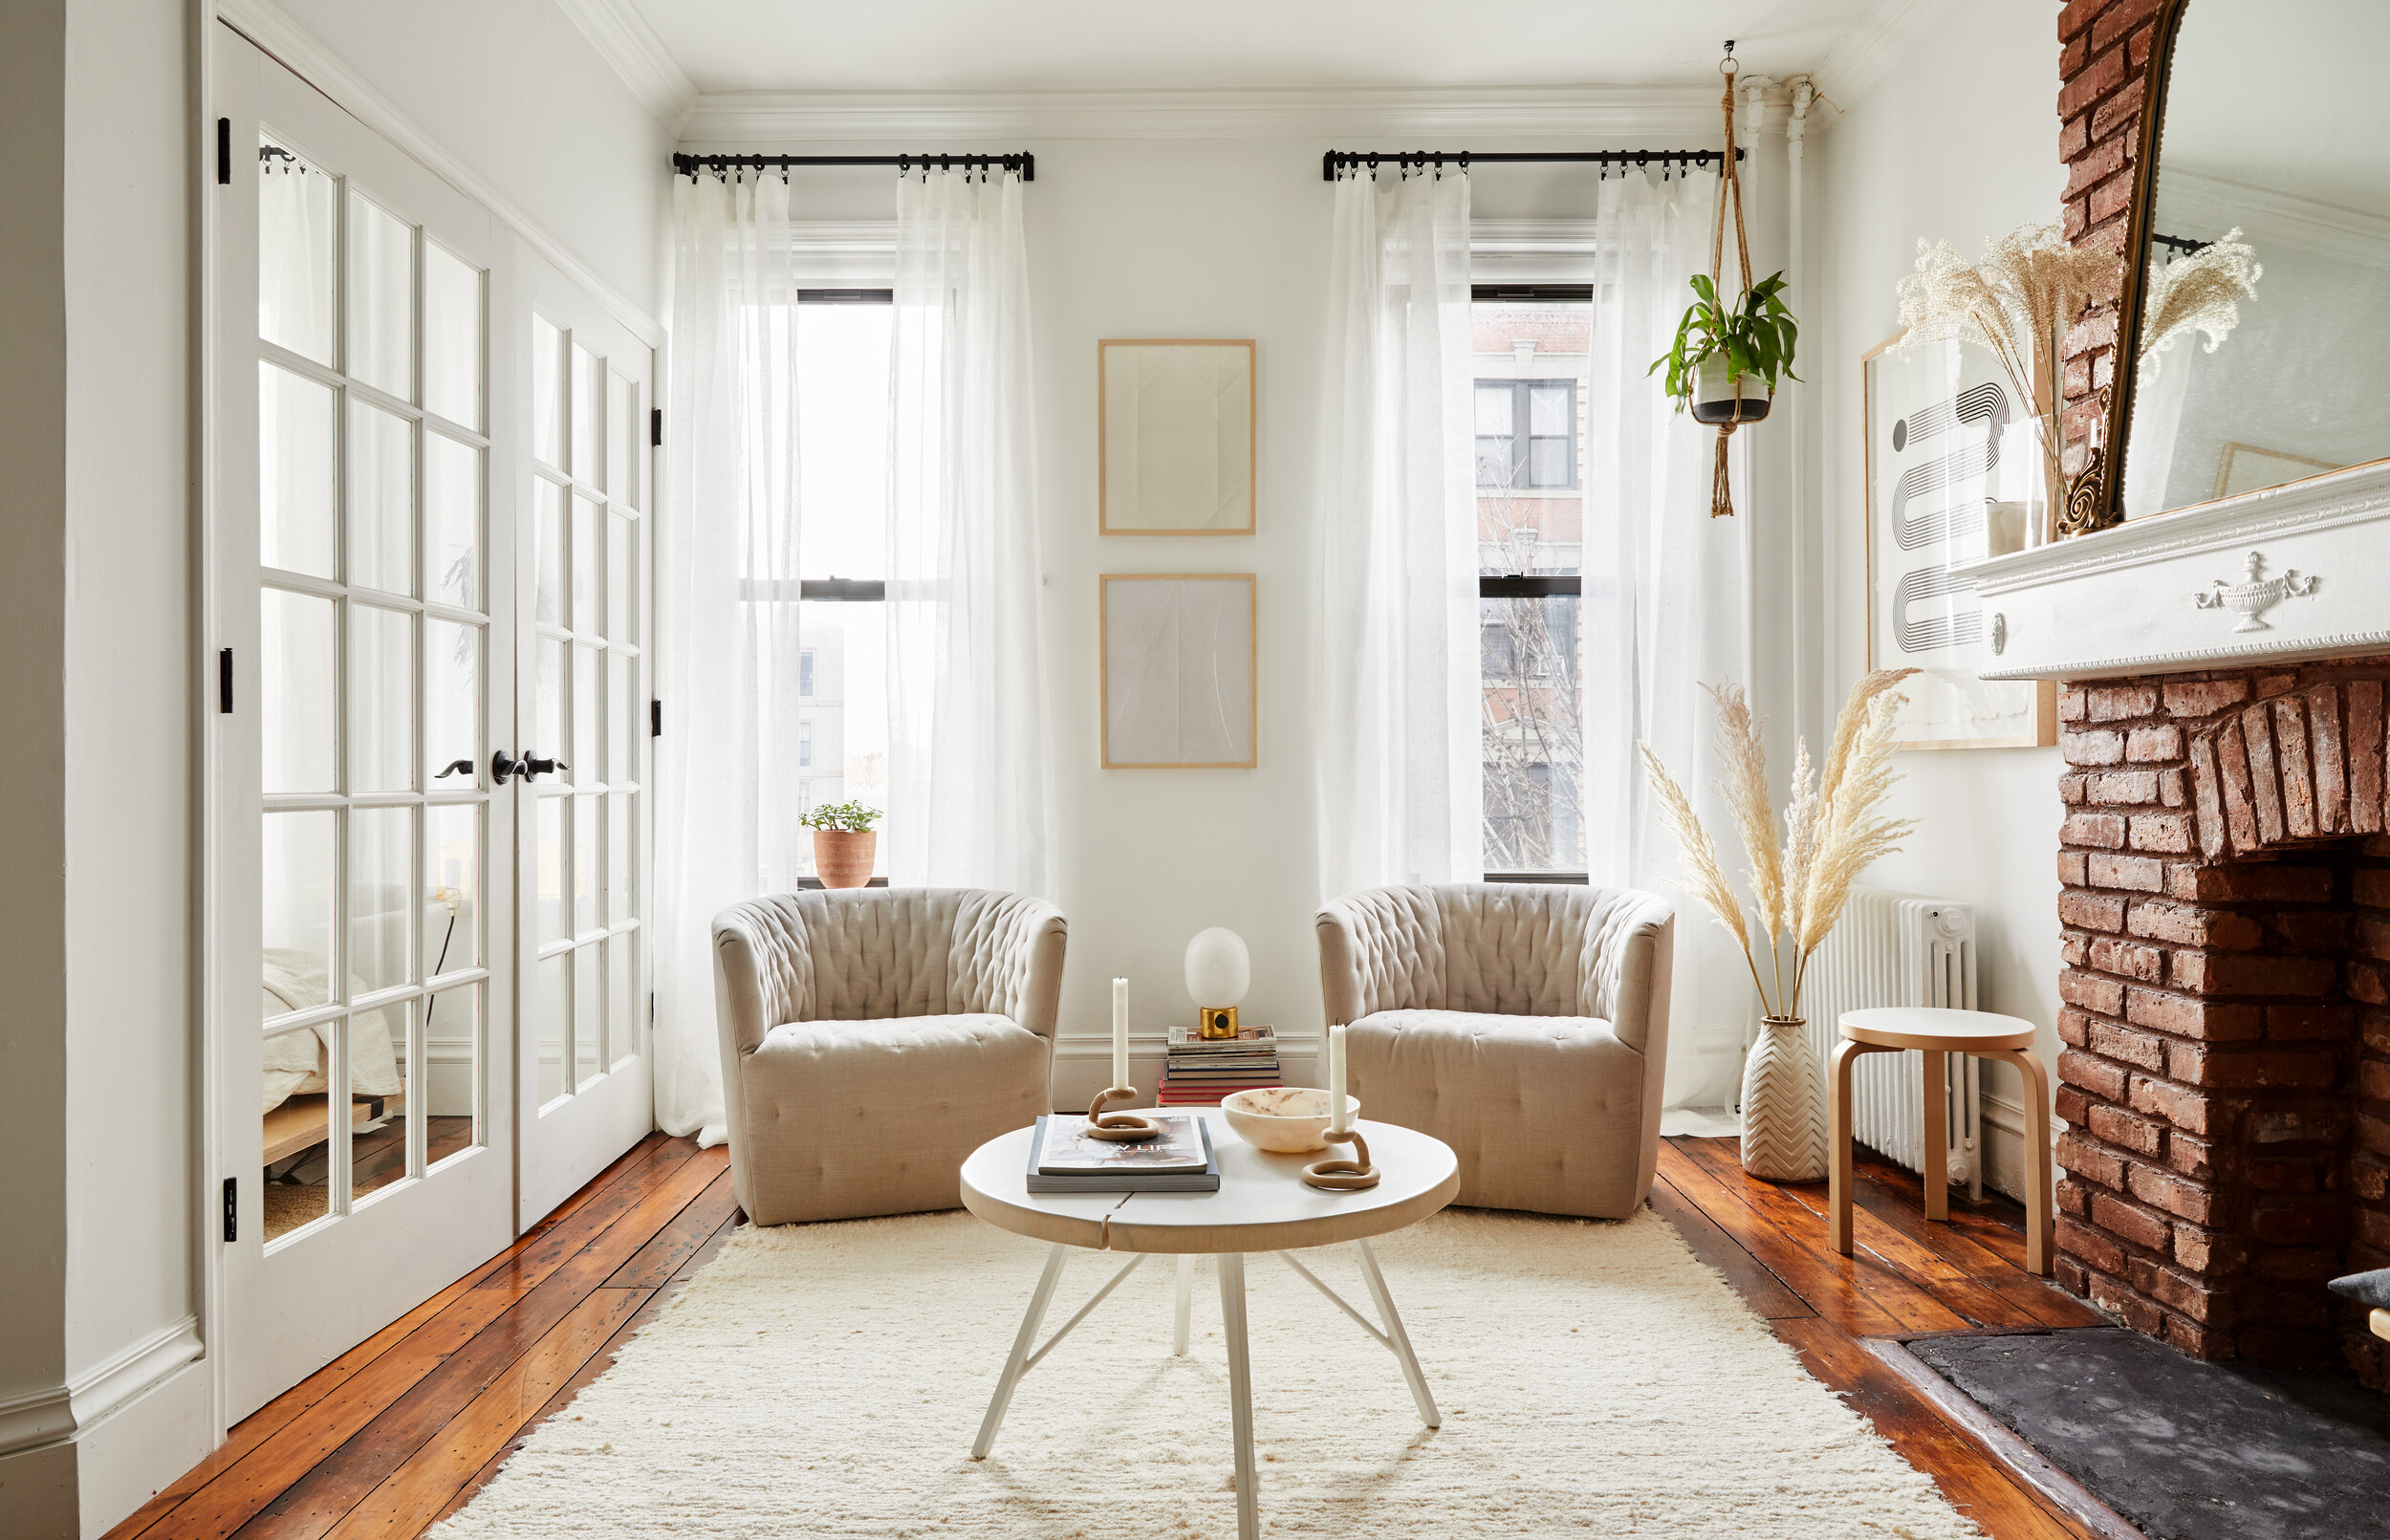 South Slope Sanctuary - A carefully curated pre-war historic townhouse in Brooklyn, NY.